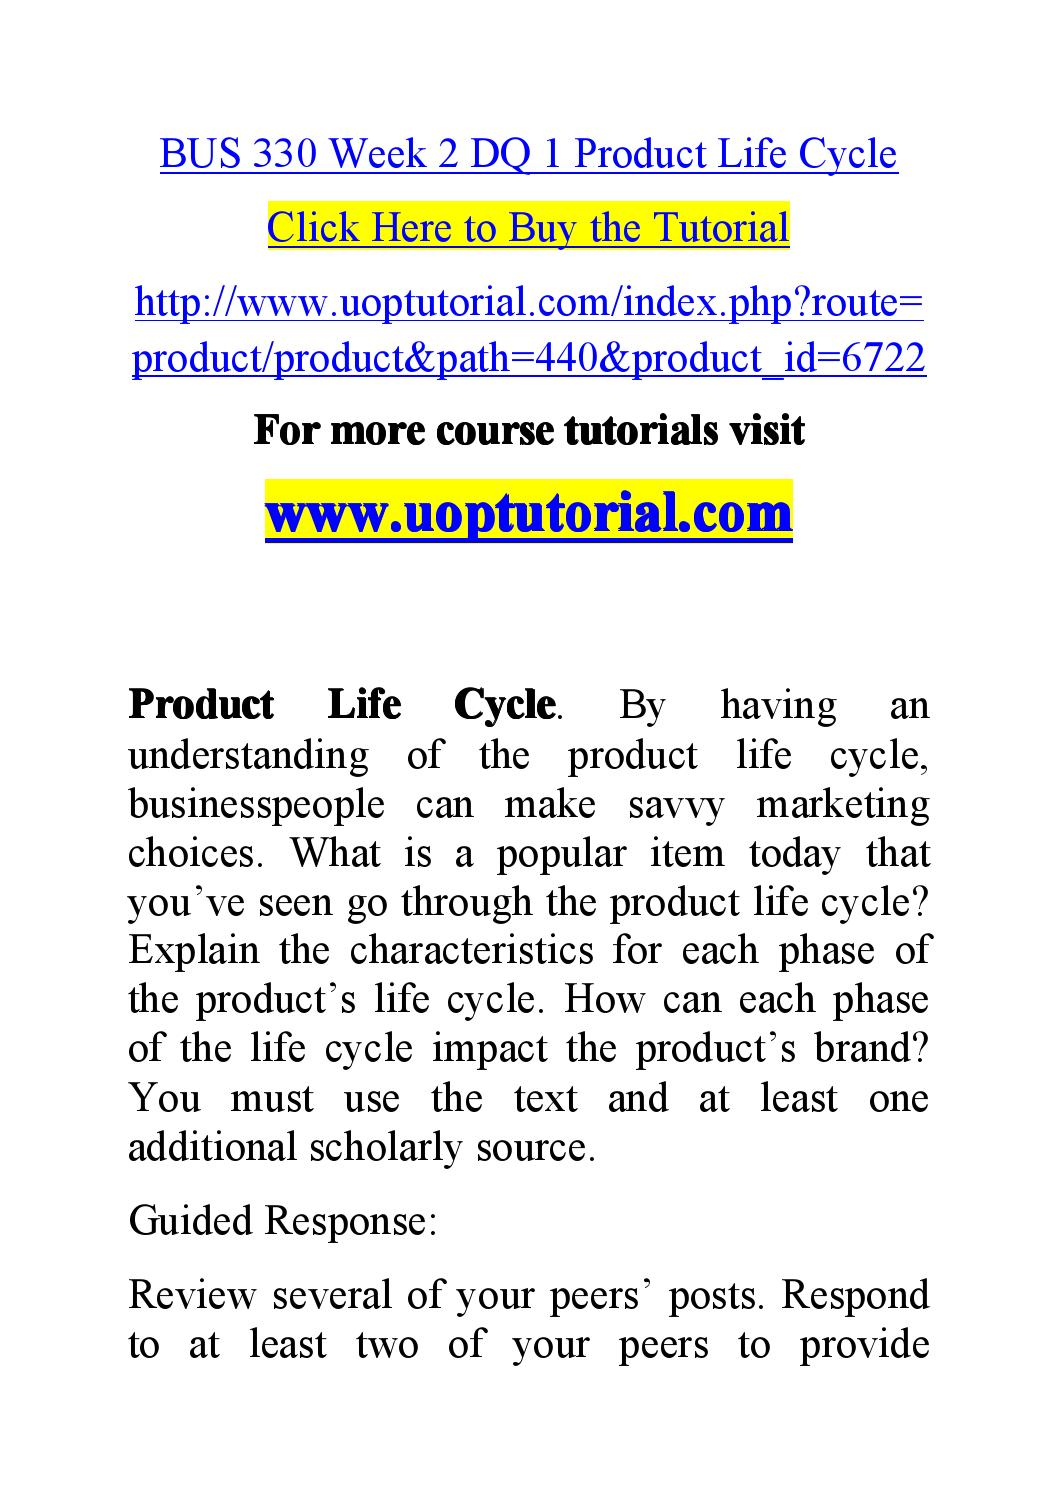 week 1 life cycle Description hci 510 week 1 life cycle paper hci 510 week 1 life cycle paper resource: life cycle paper grading criteria write a 750- to 1,050-word paper that includes the following.